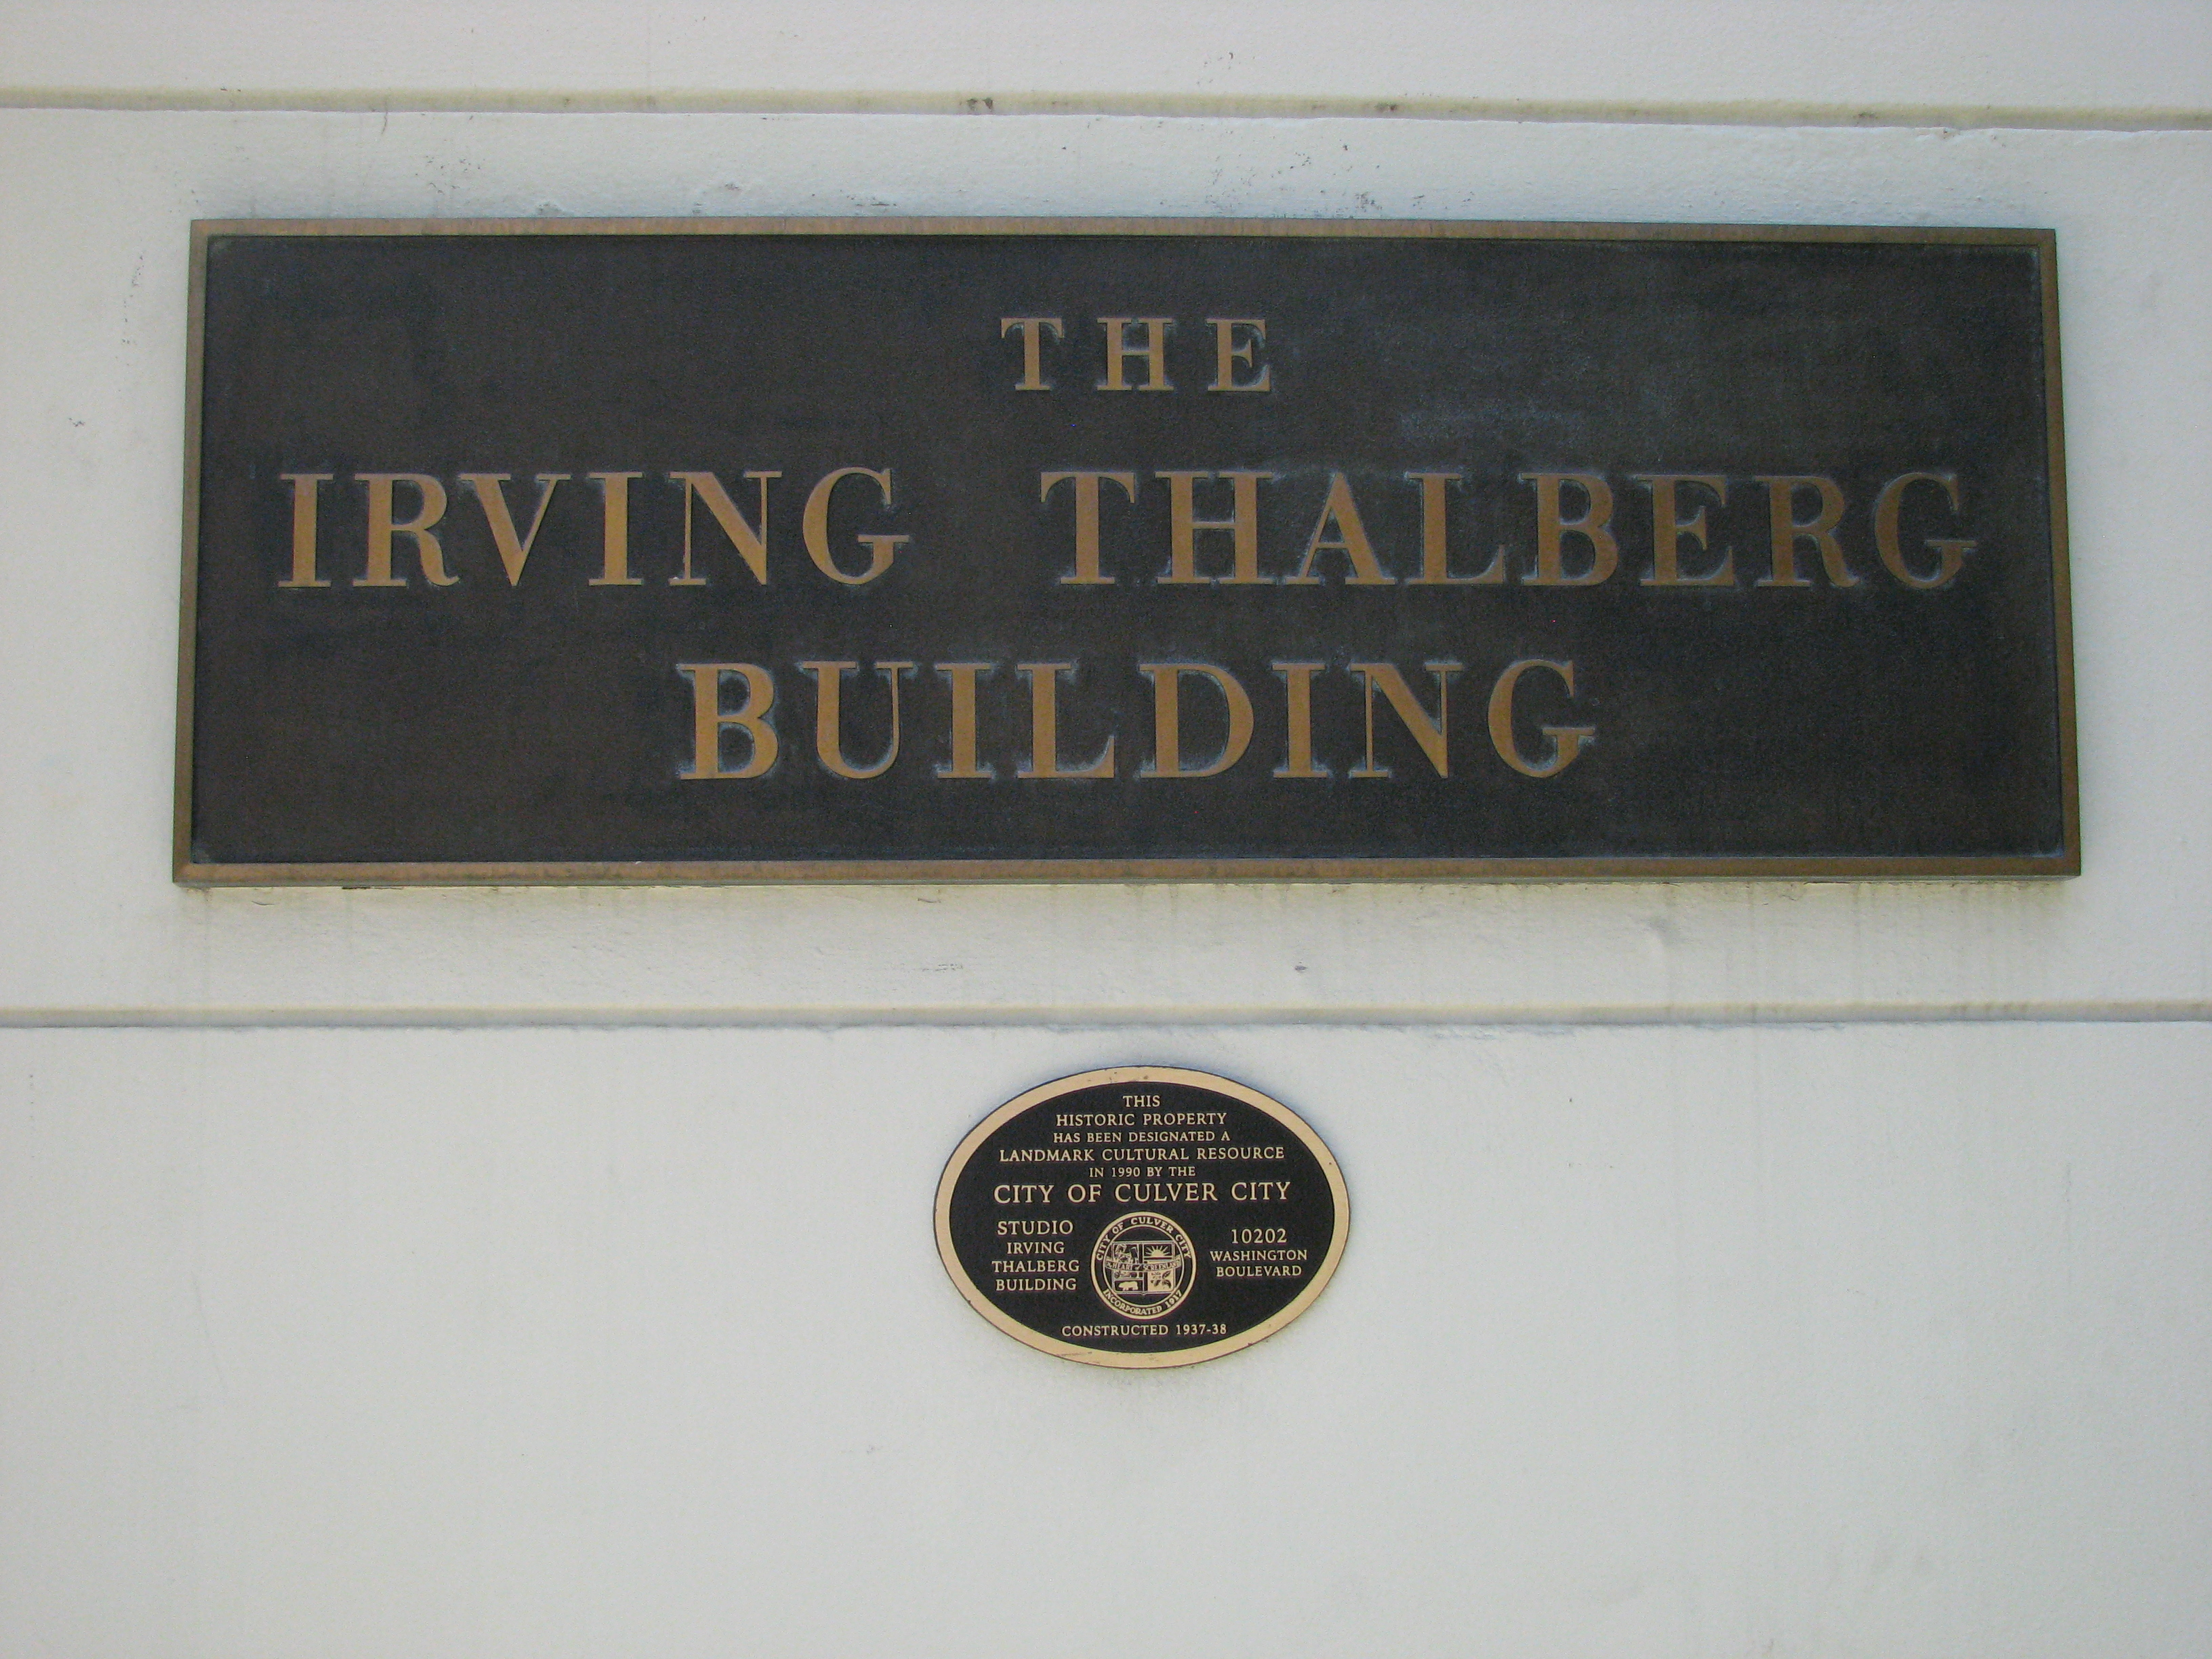 More Oscars waited inside the Irving Thalberg Building.